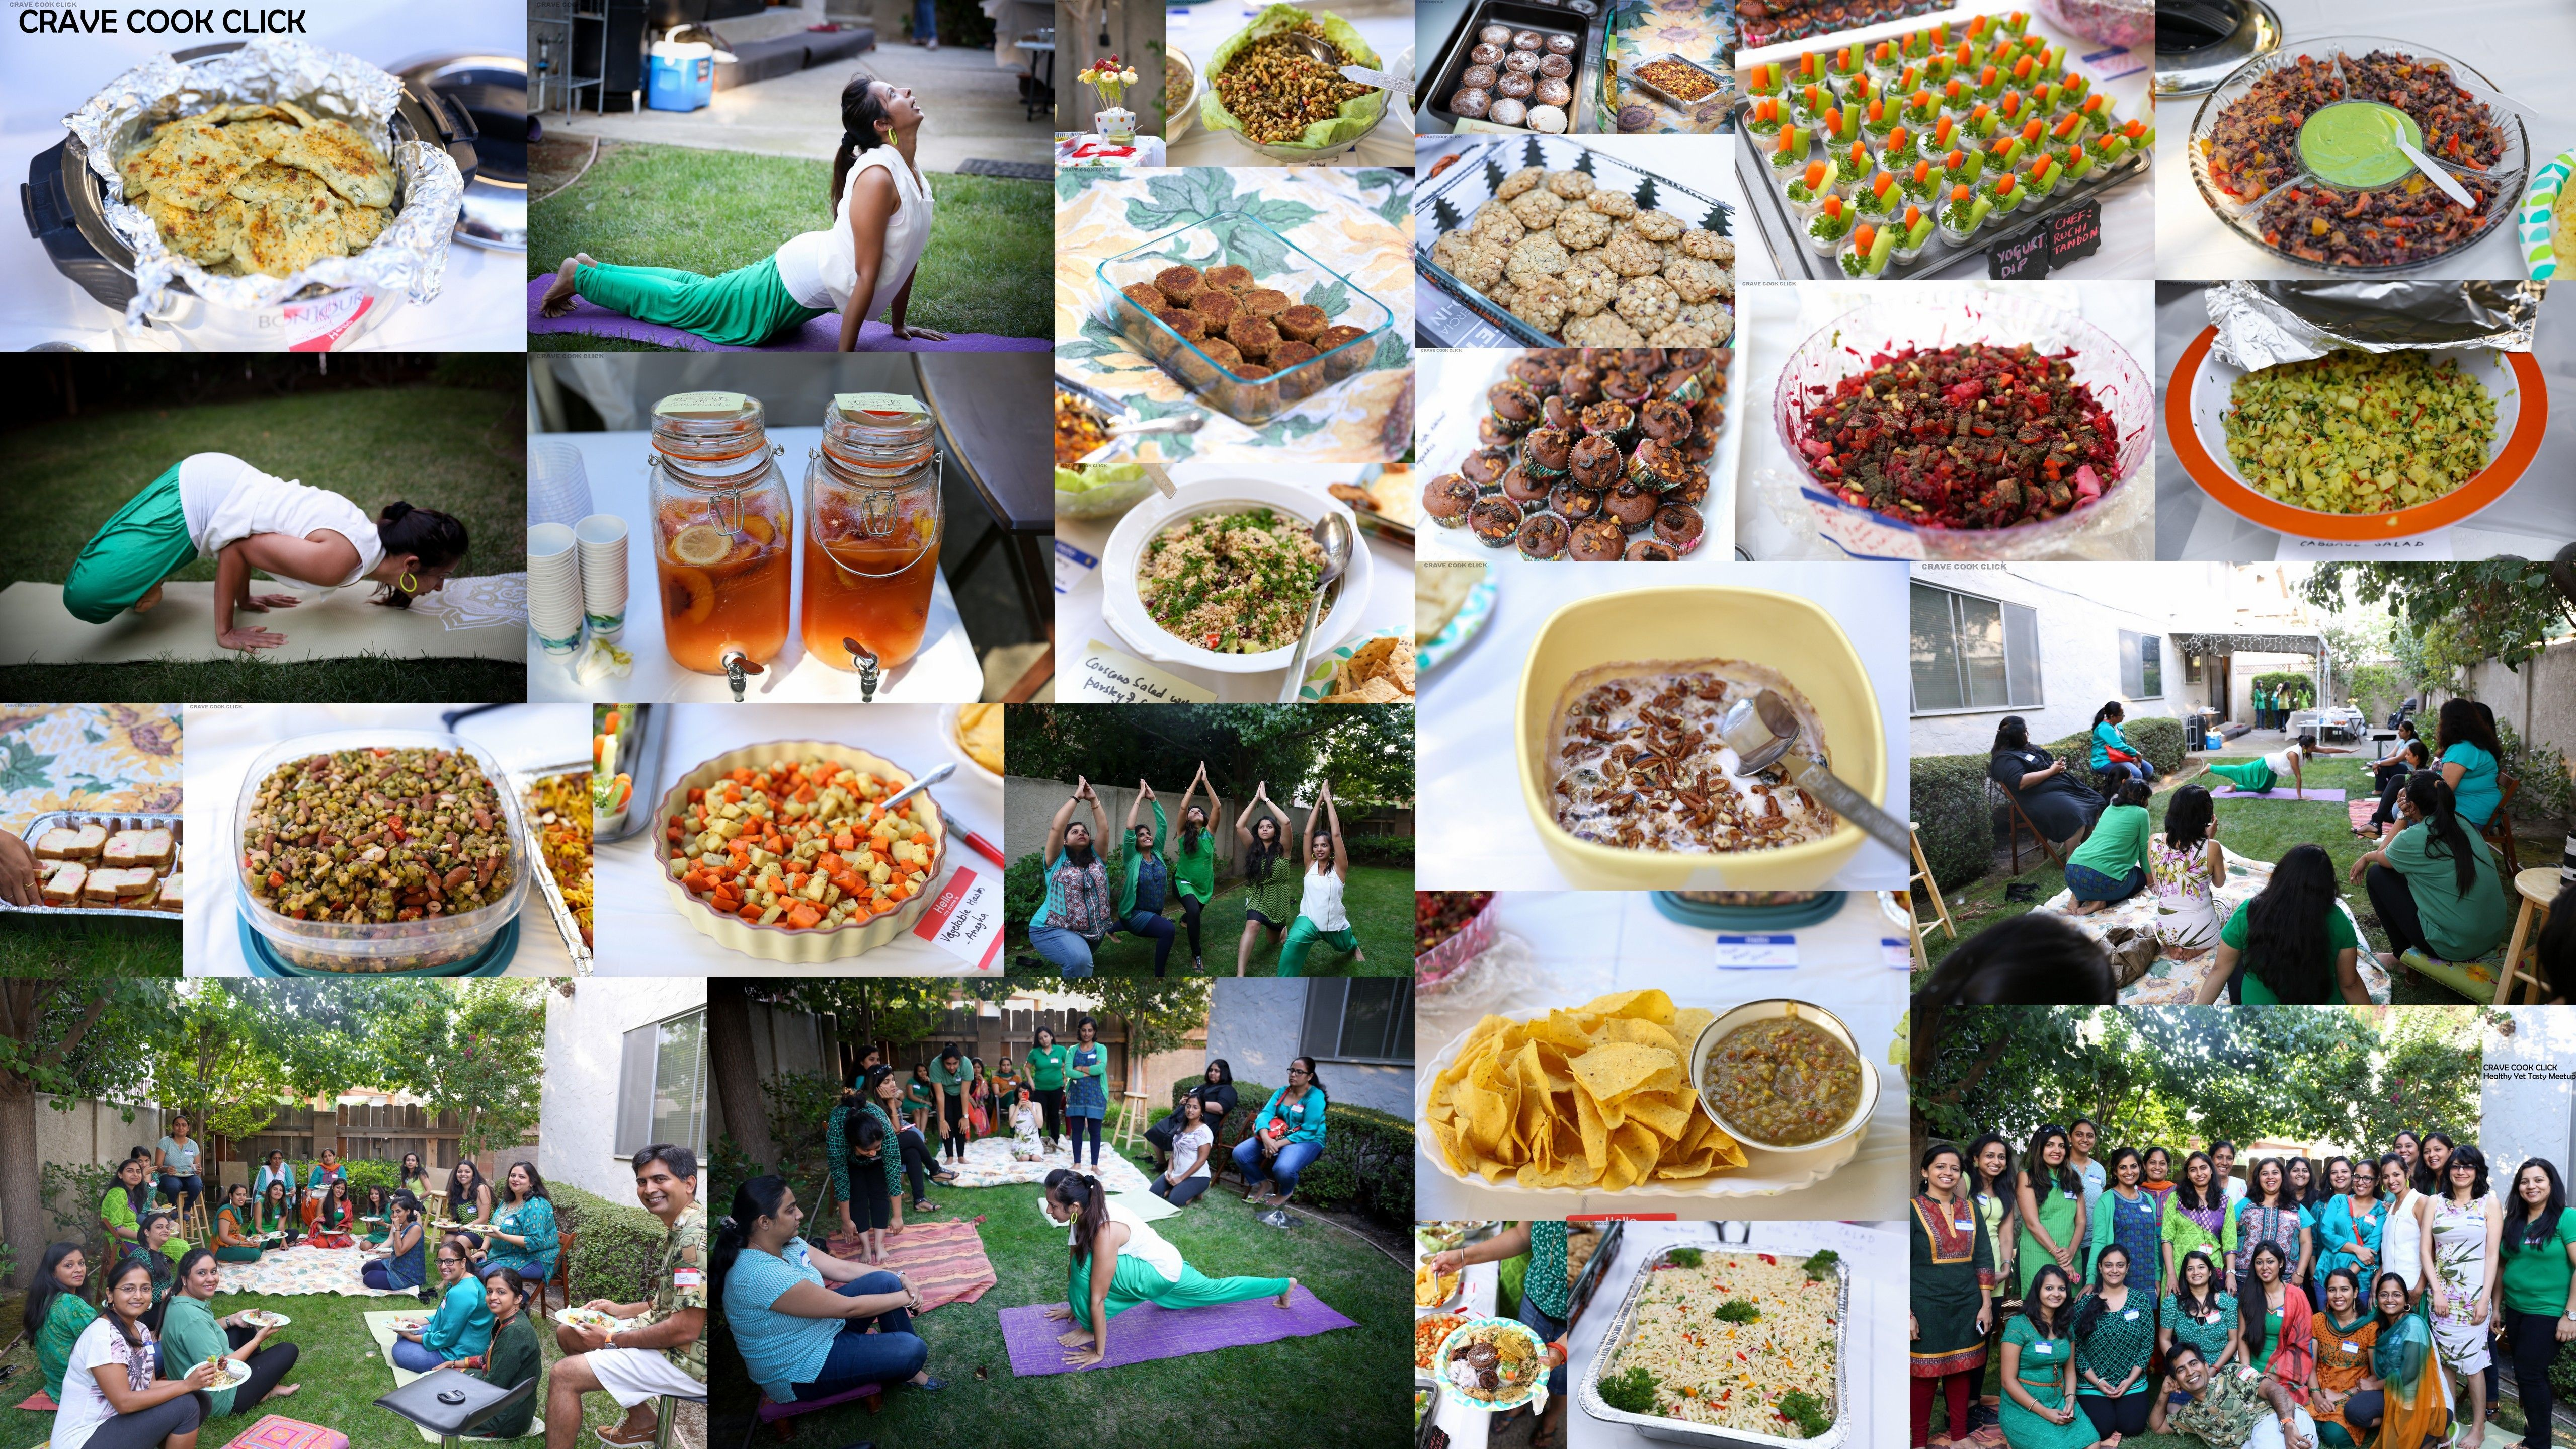 Crave cook click healthy yet tasty meetup recipe book